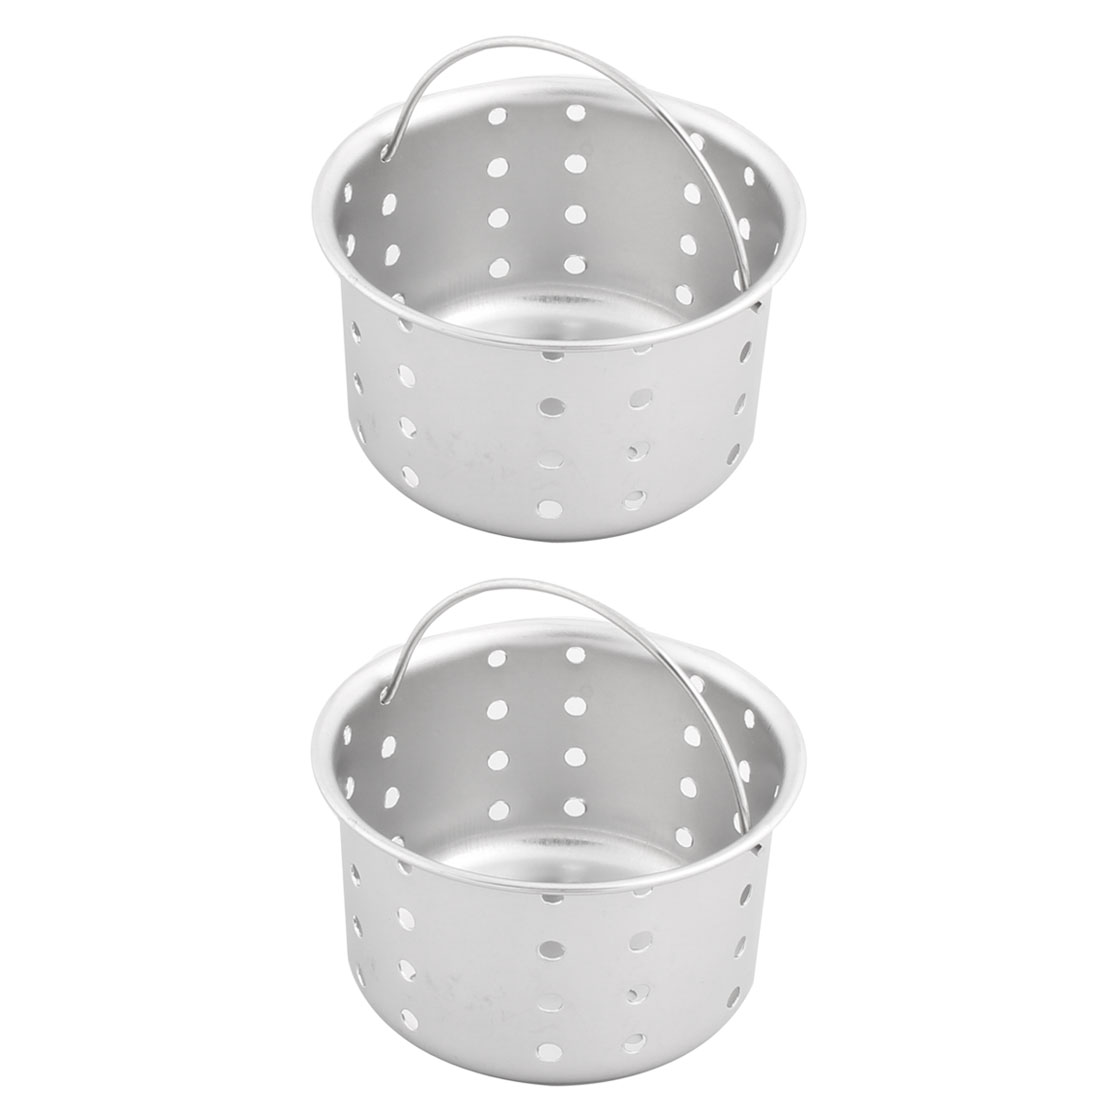 Bathroom Kitchen Stainless Steel Basin Sink Mesh Drain Strainer Filter 70mm Dia 2pcs